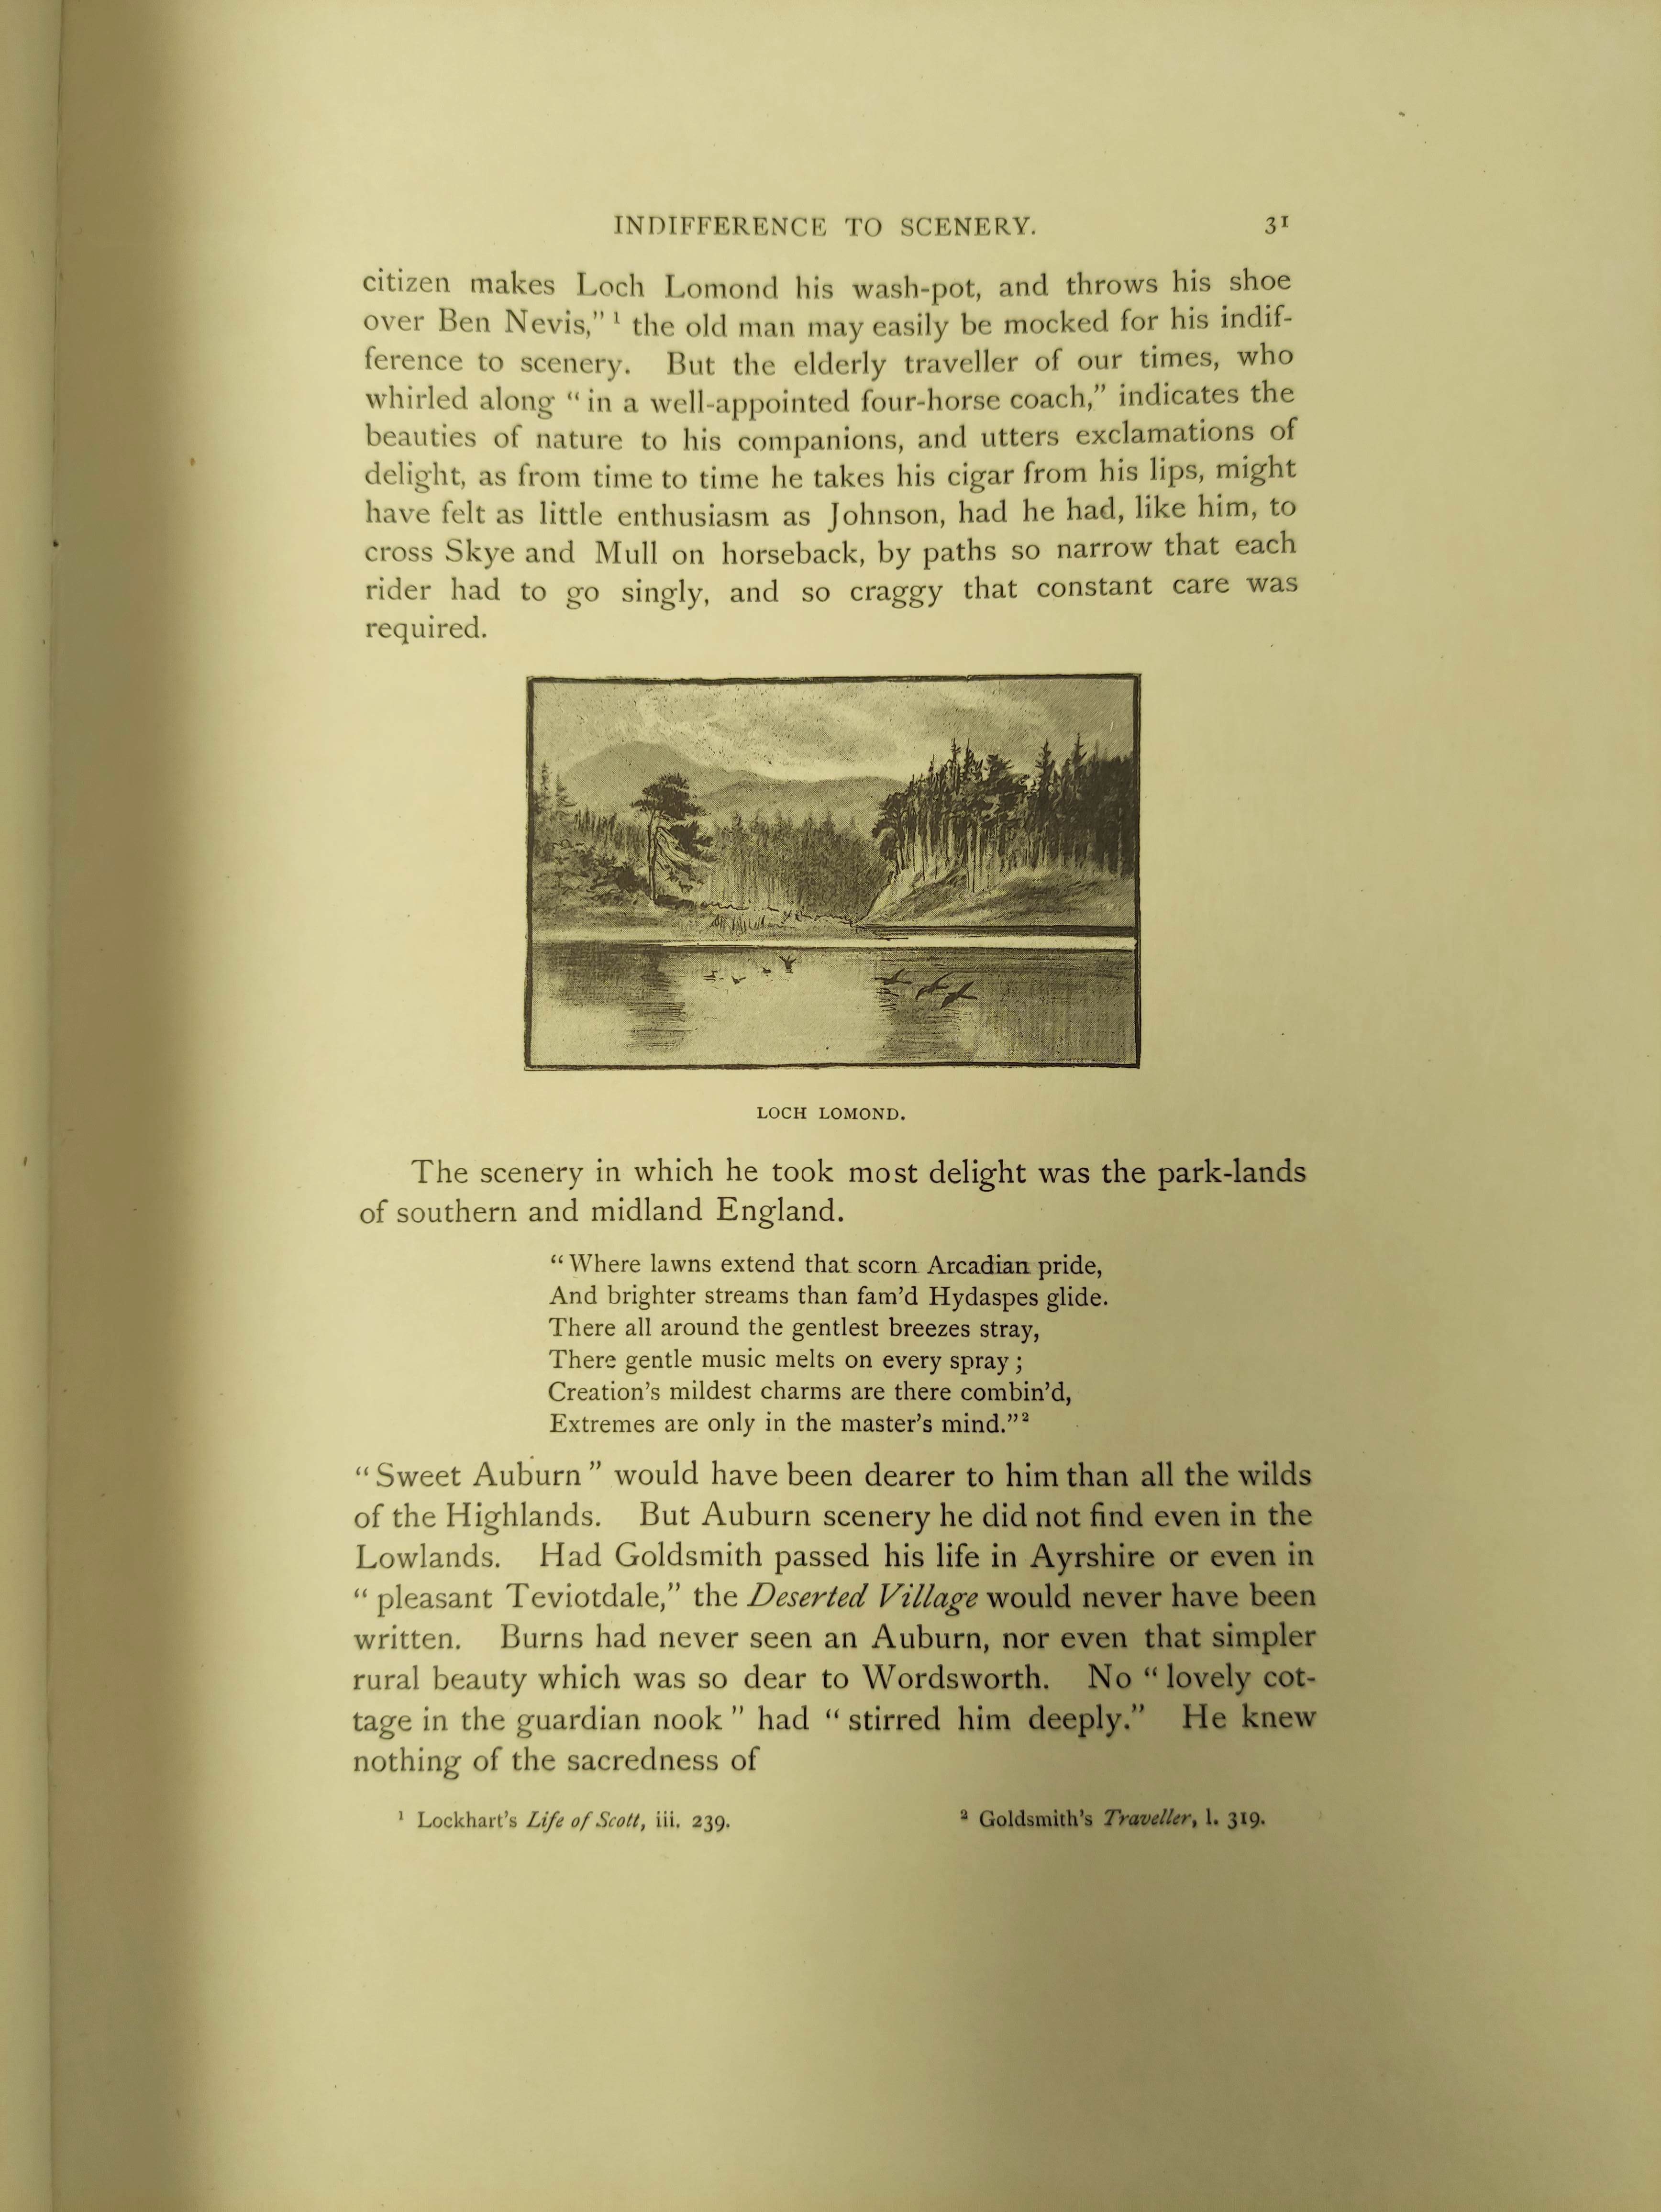 BIRKBECK HILL GEORGE.Footsteps of Dr. Johnson. Edition Deluxe. Plates. Unbound leaves in card - Image 9 of 10